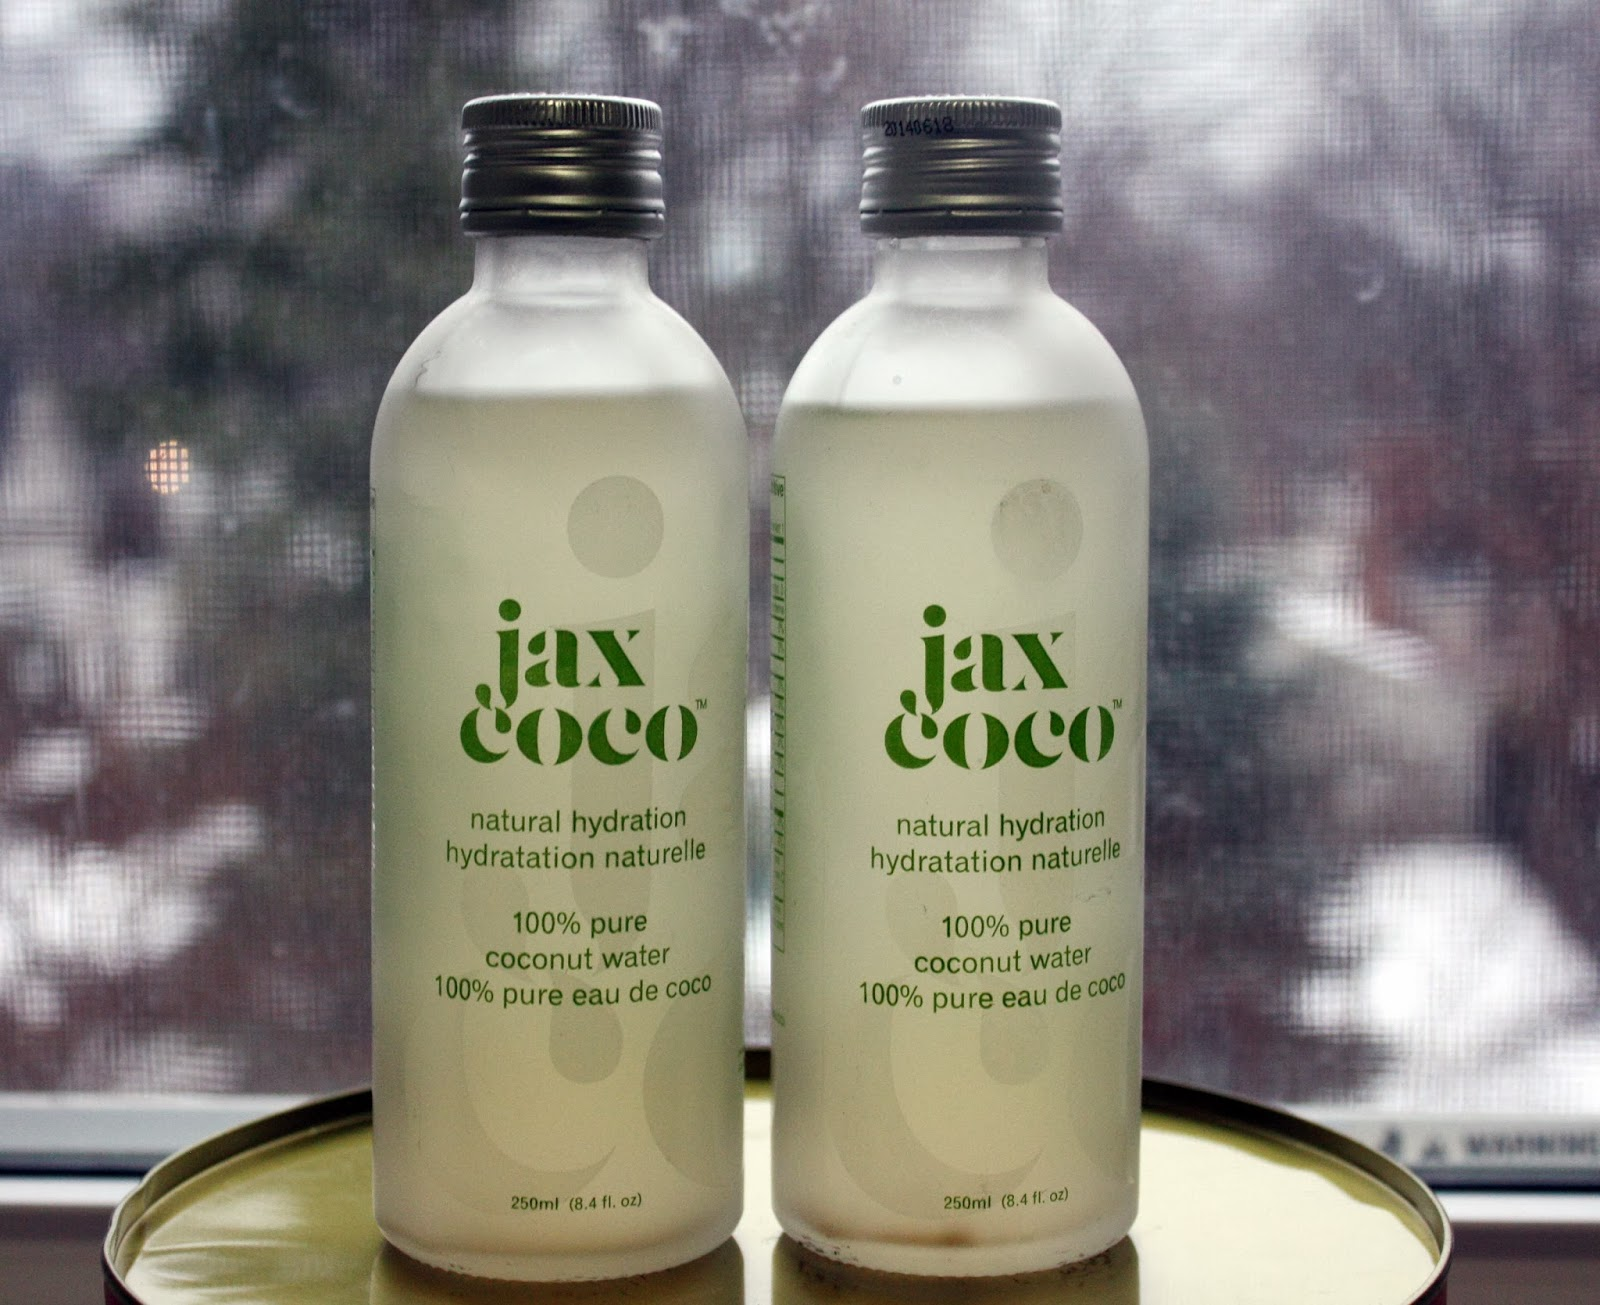 jax coco coconut water